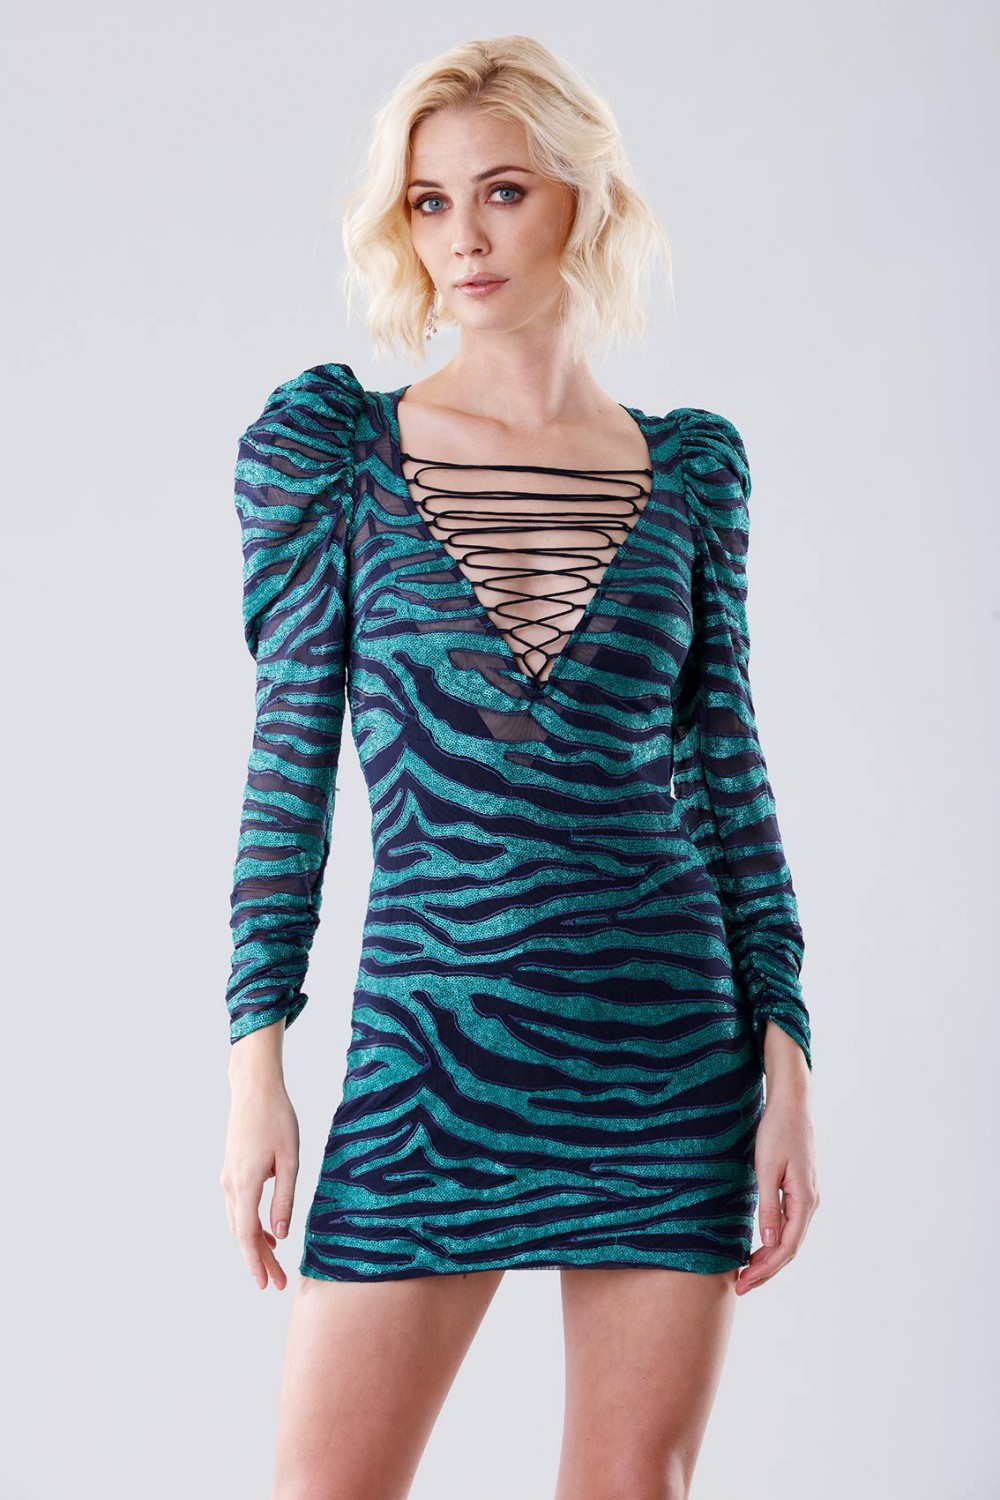 Tiger dress with crosses